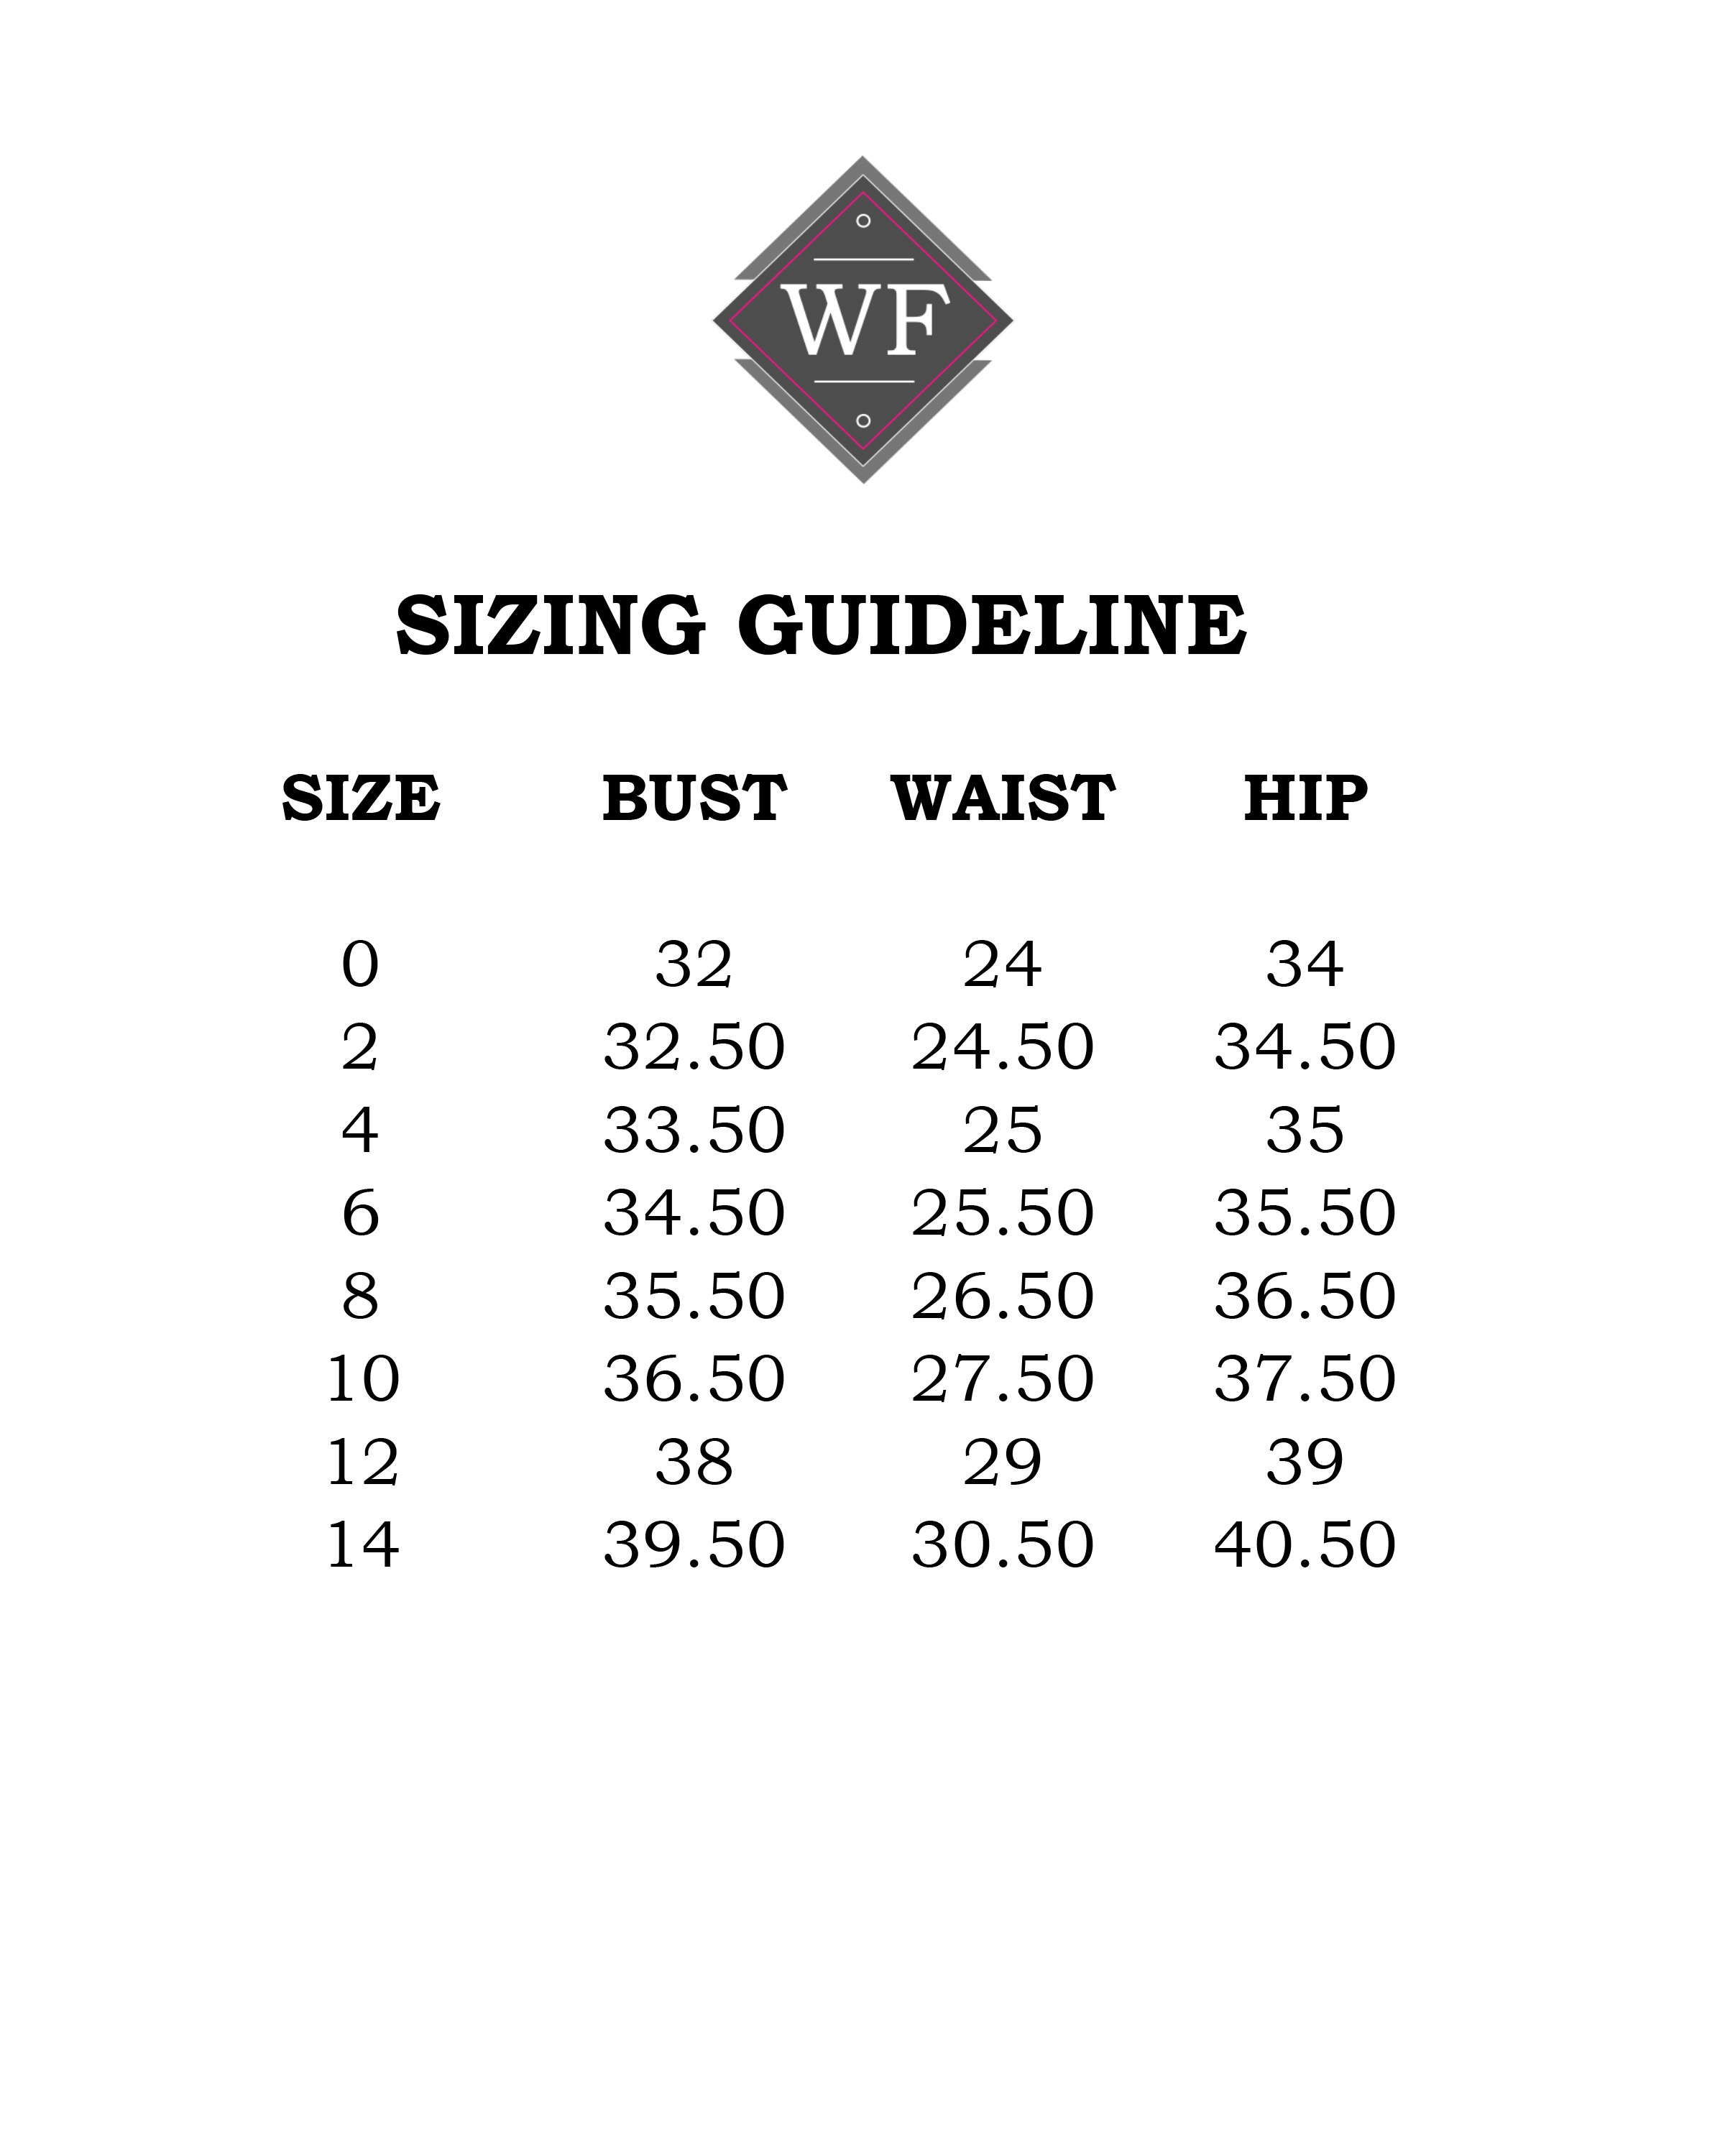 WFD Sizing Guideline.jpg